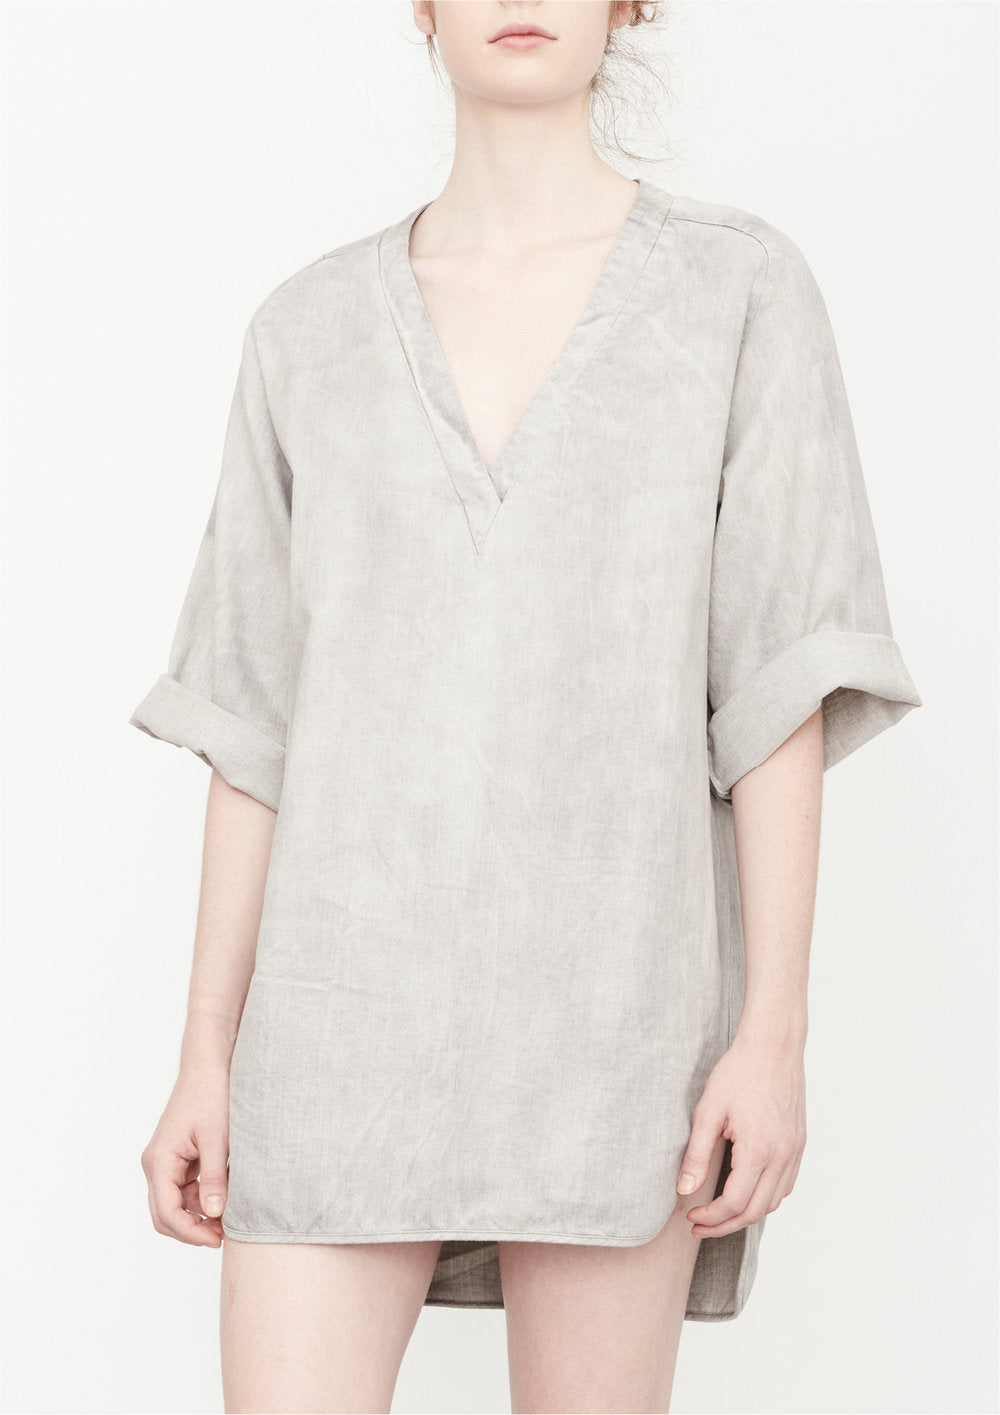 SHIRT/DRESS - DENIM light grey washed - BERENIK